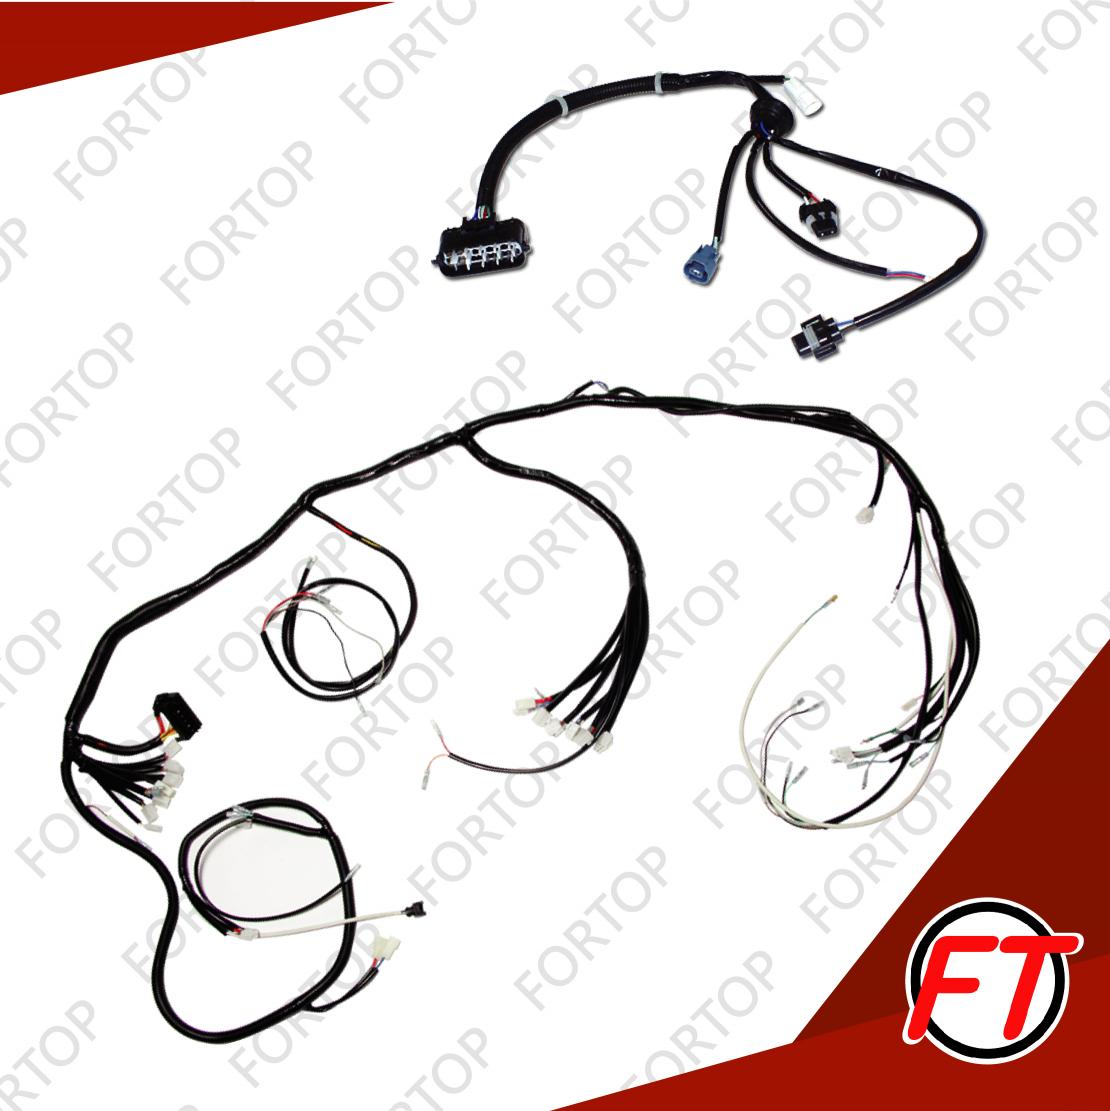 Wiring Harness For Vehicle Main Body Fortop Industrial Co Ltd Clipart